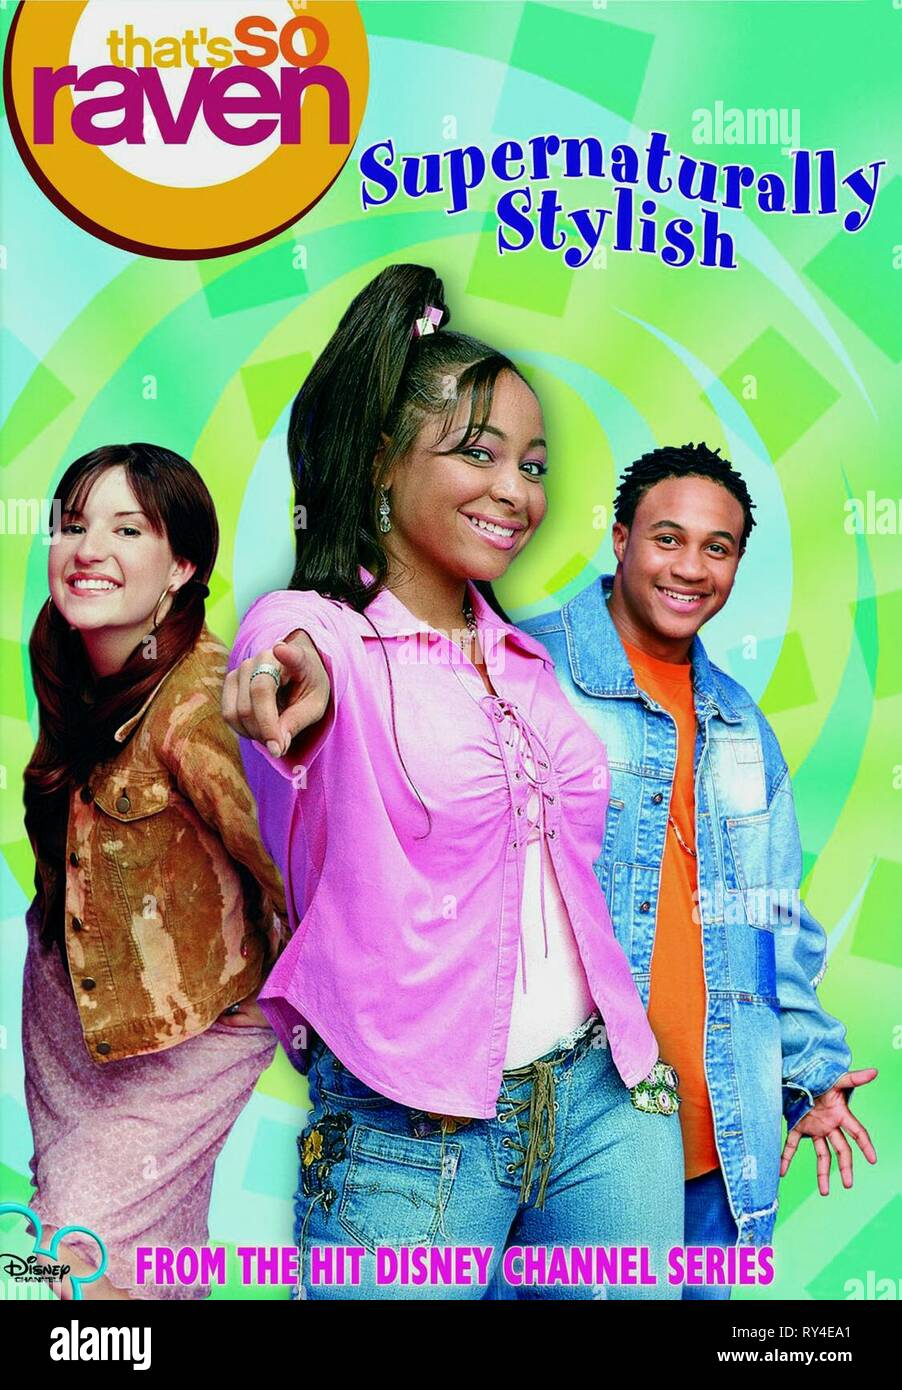 POL,RAVEN,BROWN, THAT'S SO RAVEN, 2002 - Stock Image